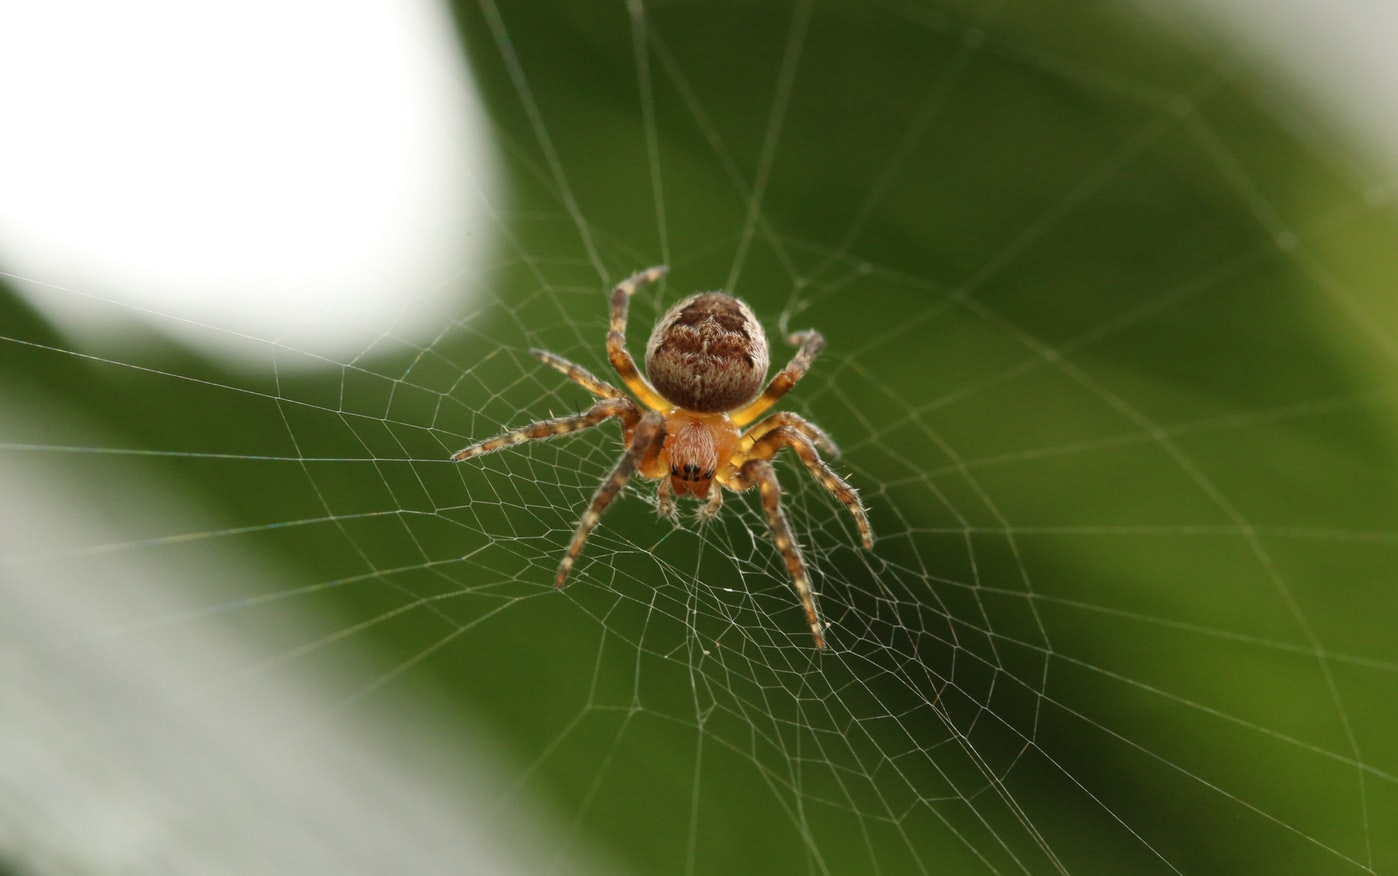 barn spider on spider web closeup photography